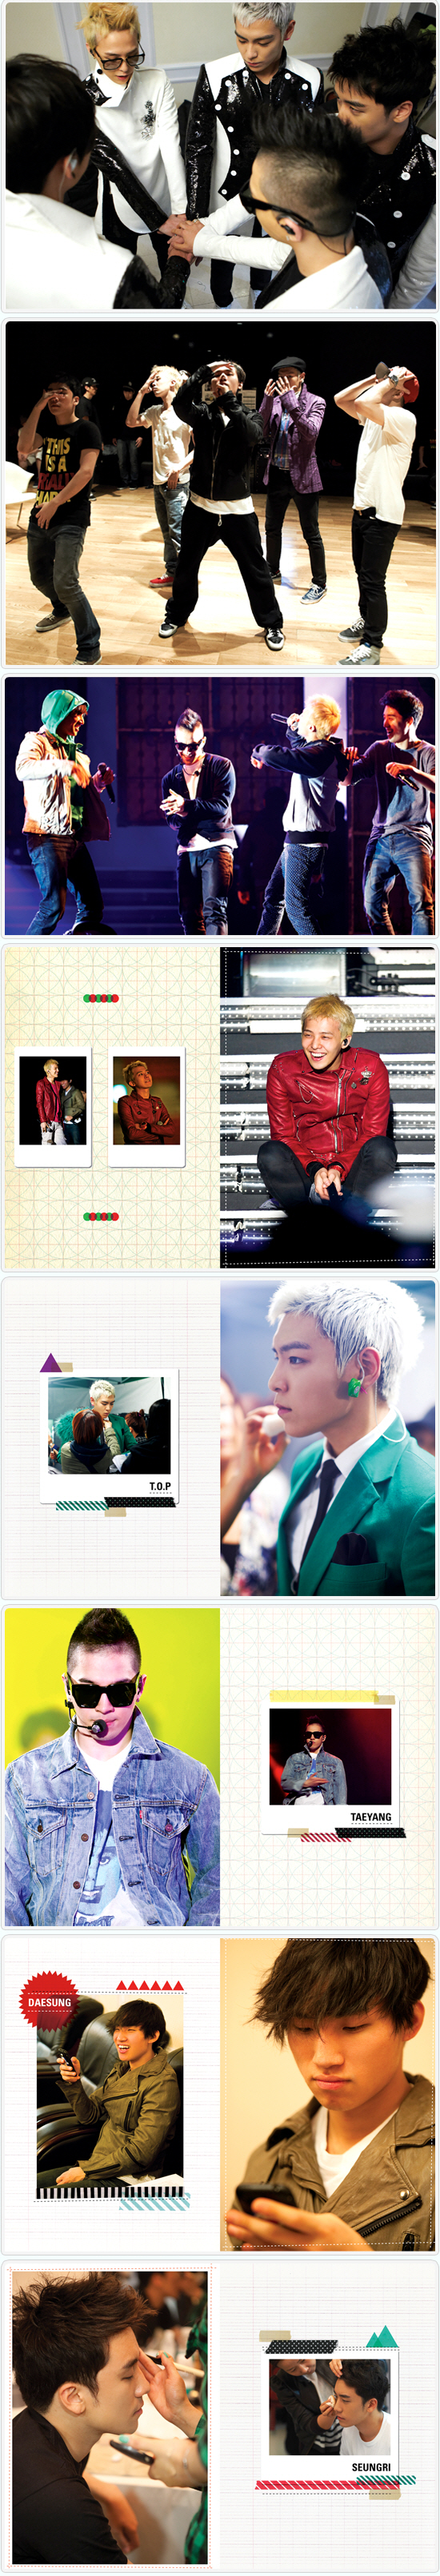 [ K-POP ] (DVD) Big Bang - 2011 Concert (Big Show) (Making DVD + 260p Photobook)